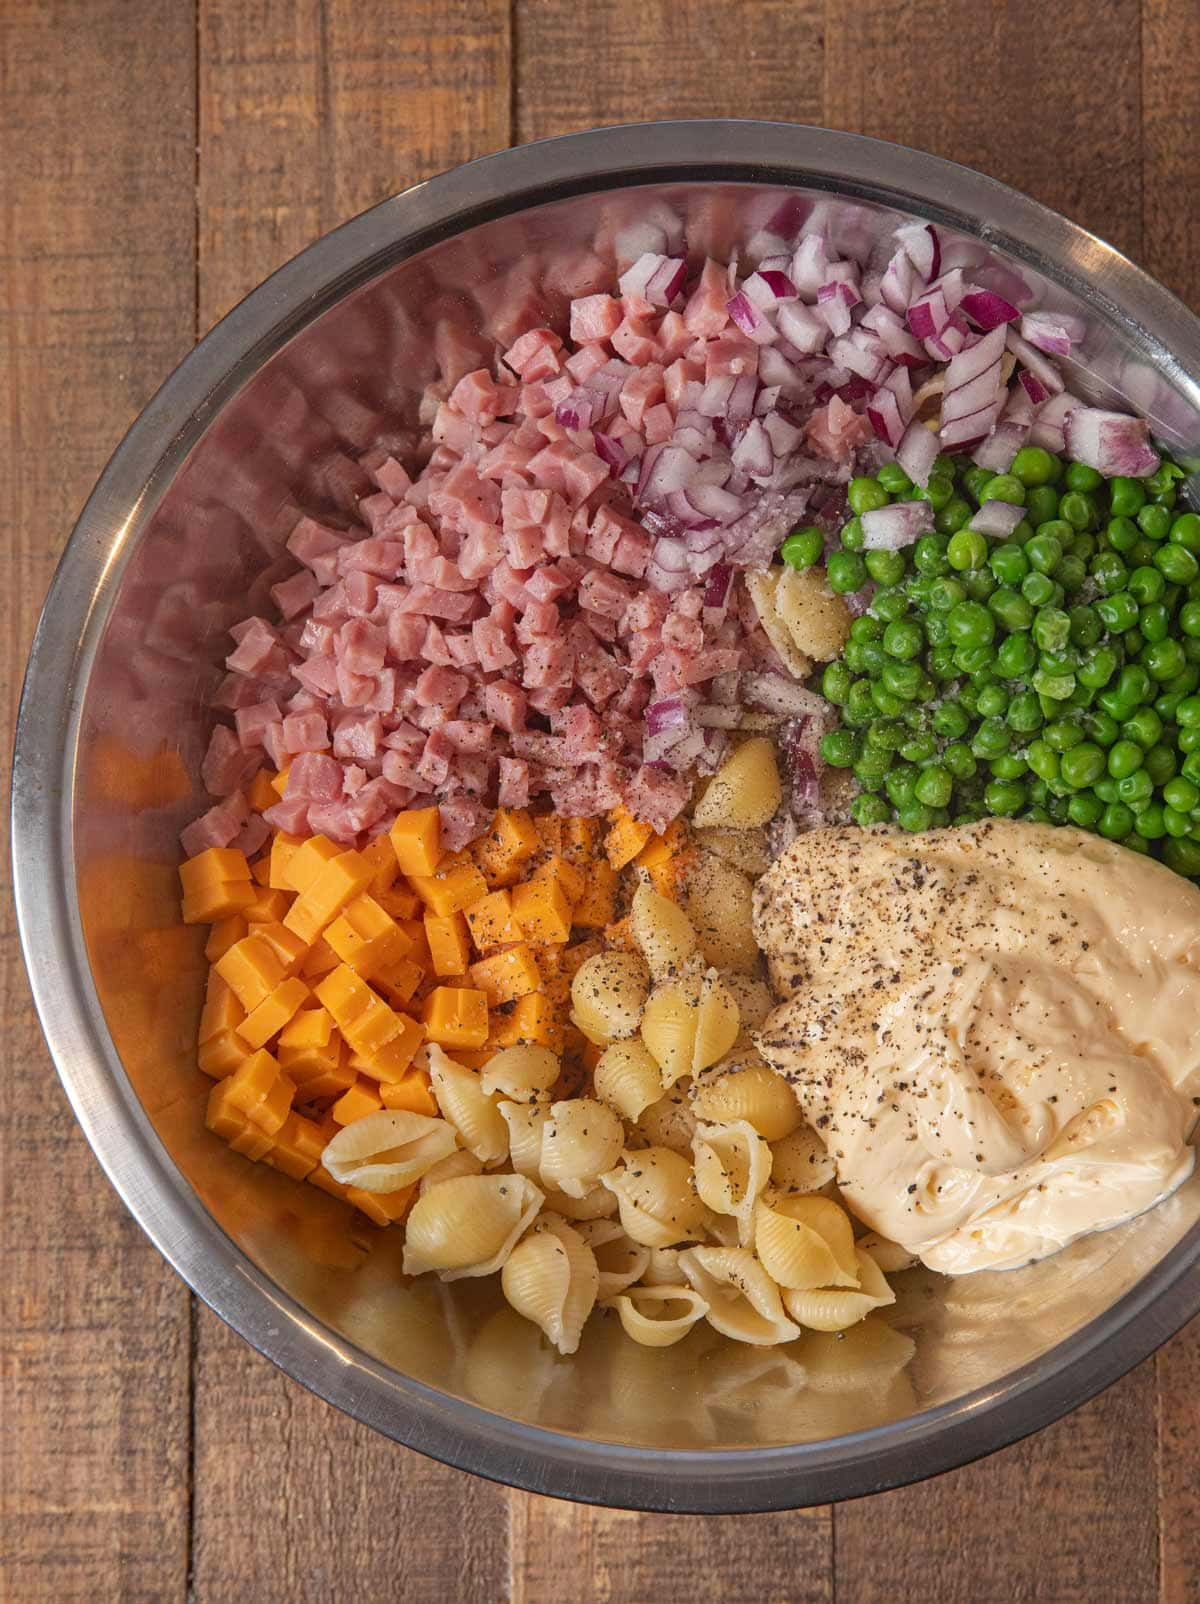 Ham and Cheese Pasta Salad ingredients in mixing bowl